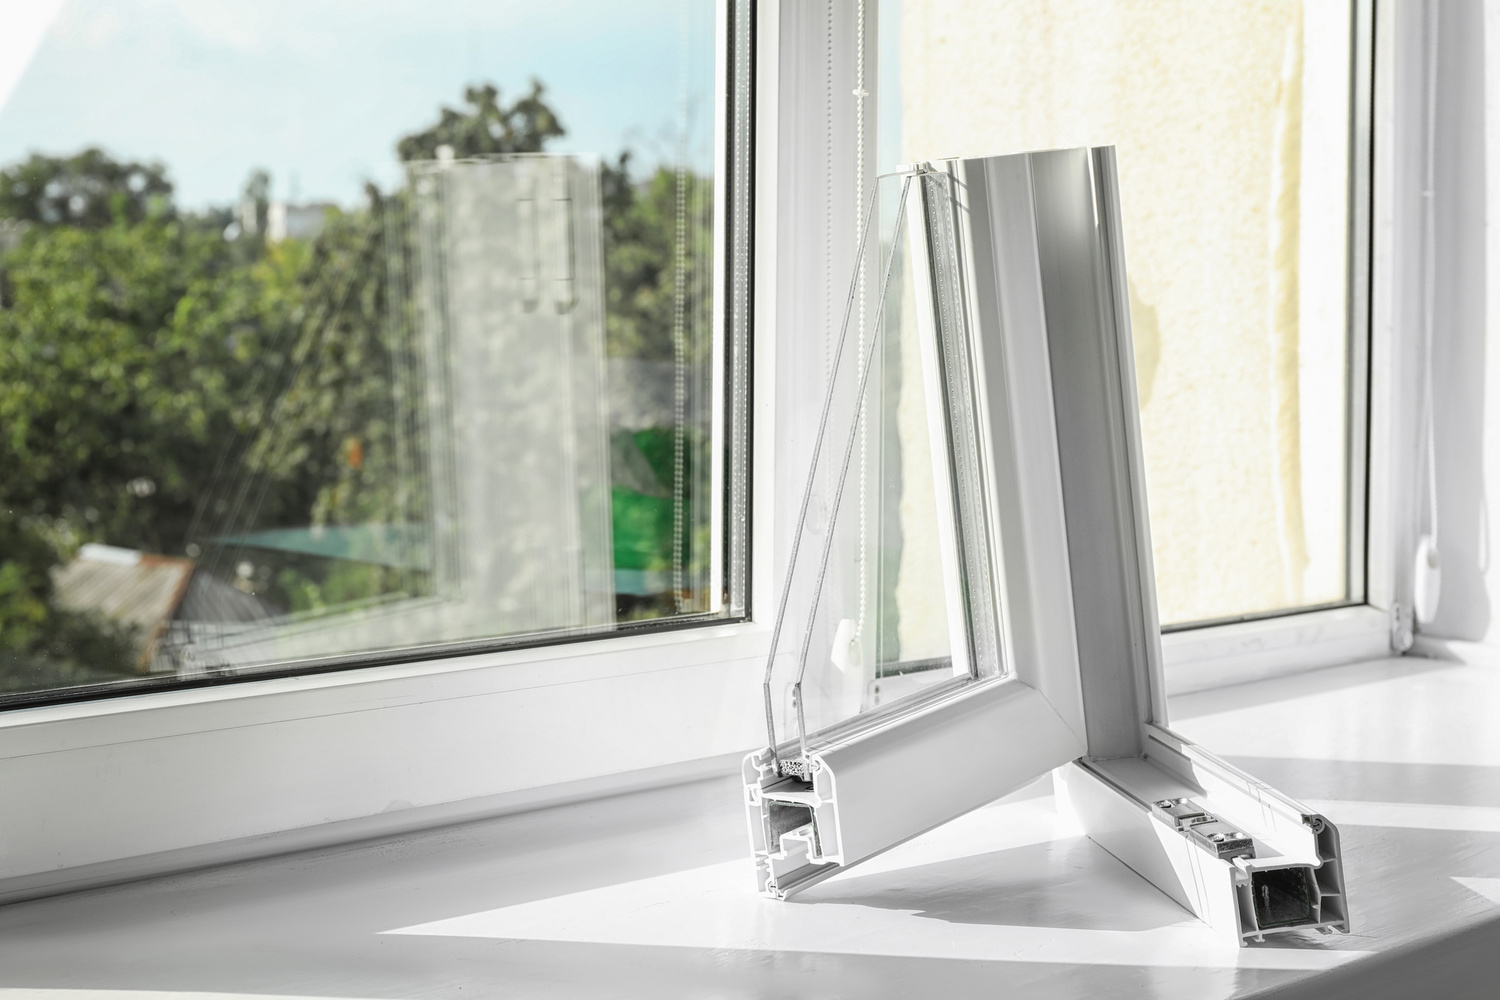 Replacement Double Pane Windows by Procraft Windows in Seattle WA